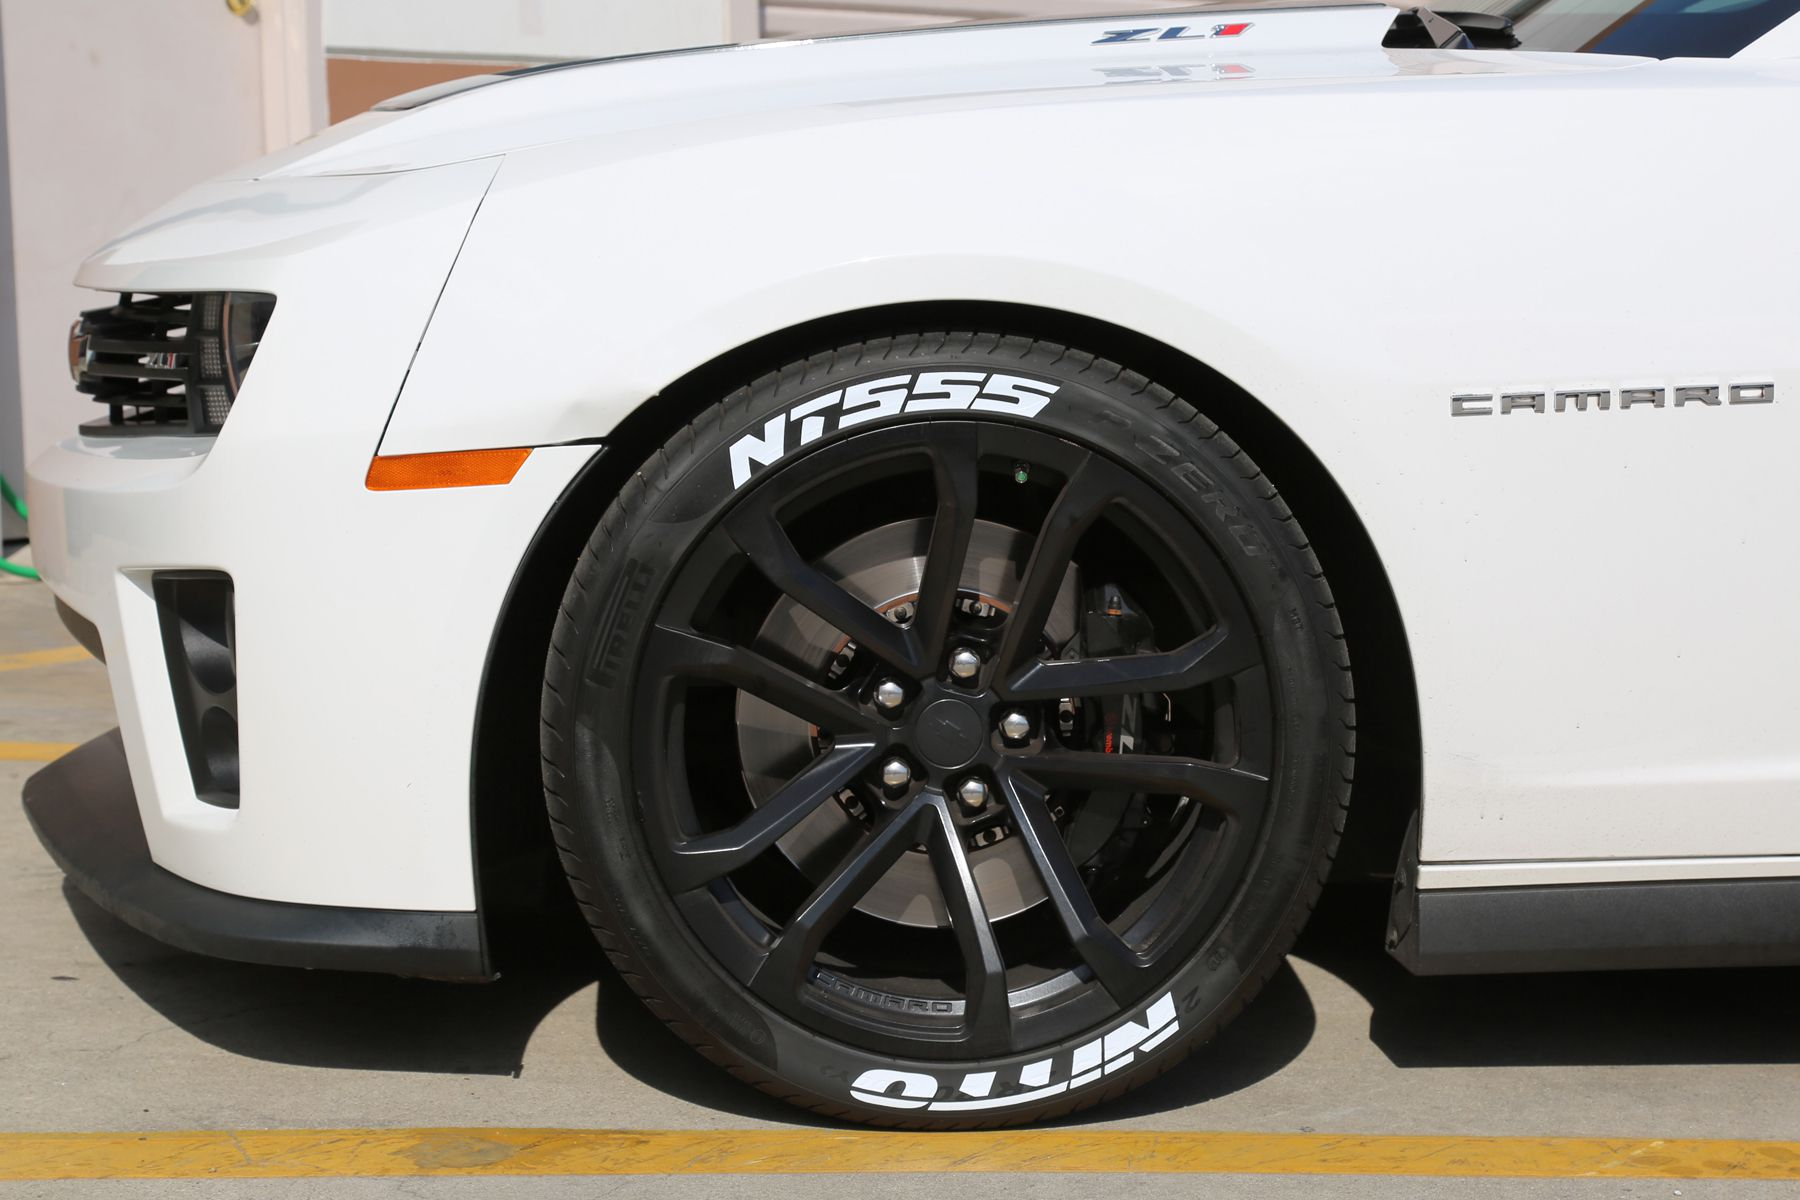 Nitto Nt555 Tire Lettering Tire Stickers